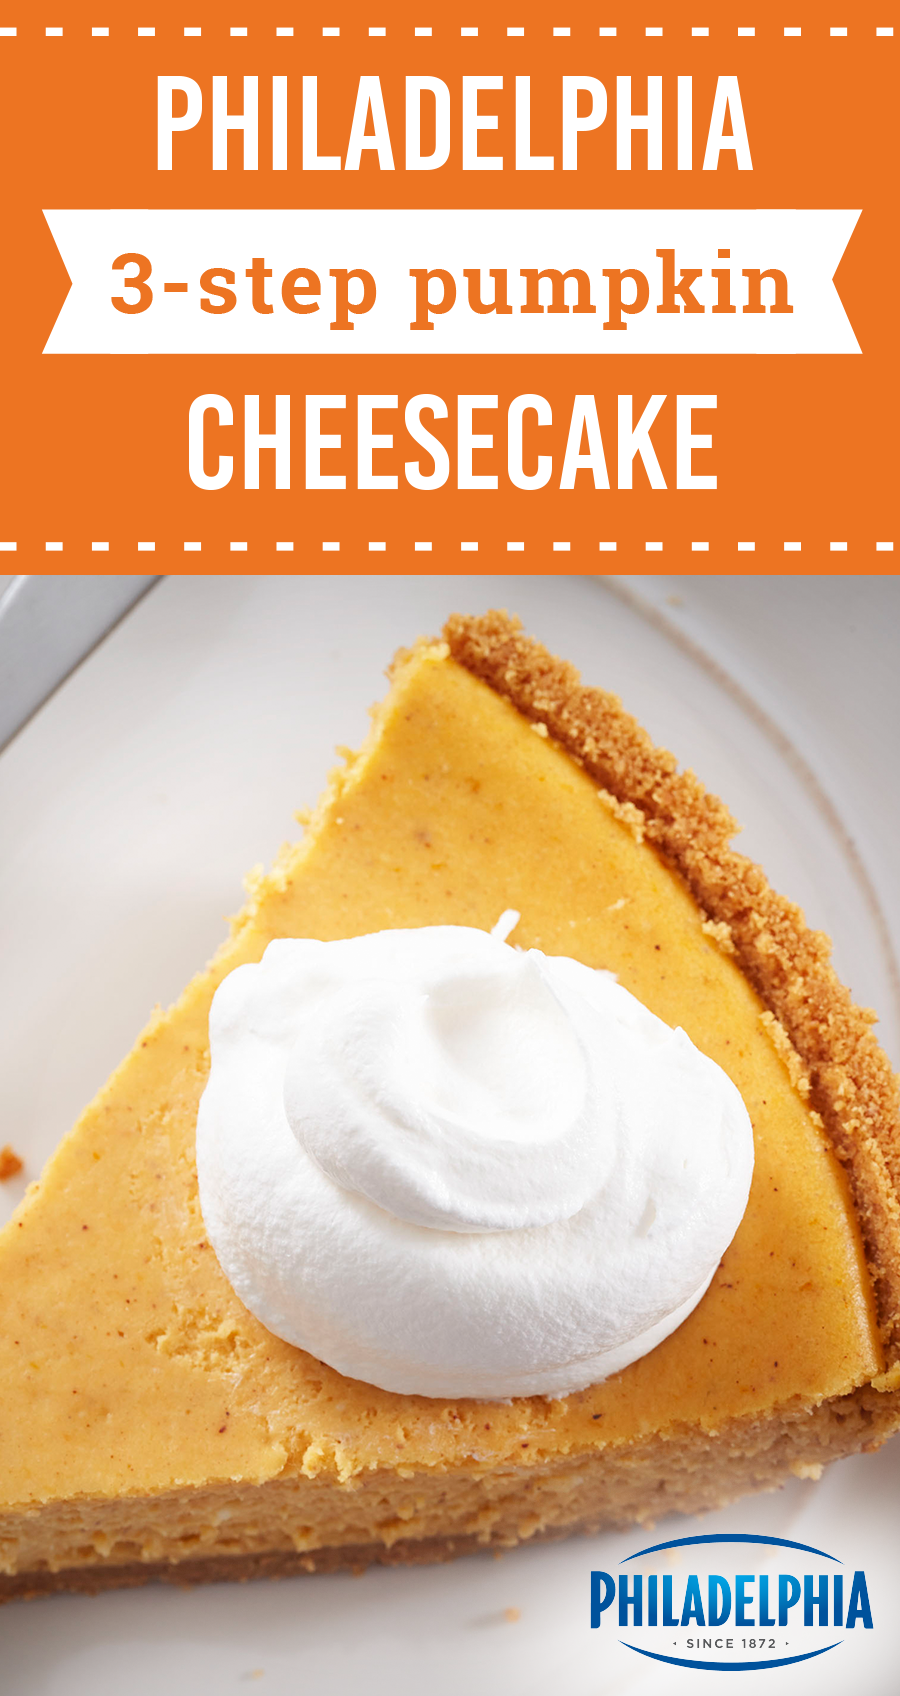 PHILADELPHIA 3-STEP Pumpkin Cheesecake – Mix, pour, bake—that's all you have to do for this fall dessert recipe! This quick autumnal treat has fall written all over it. #pumpkincheesecake